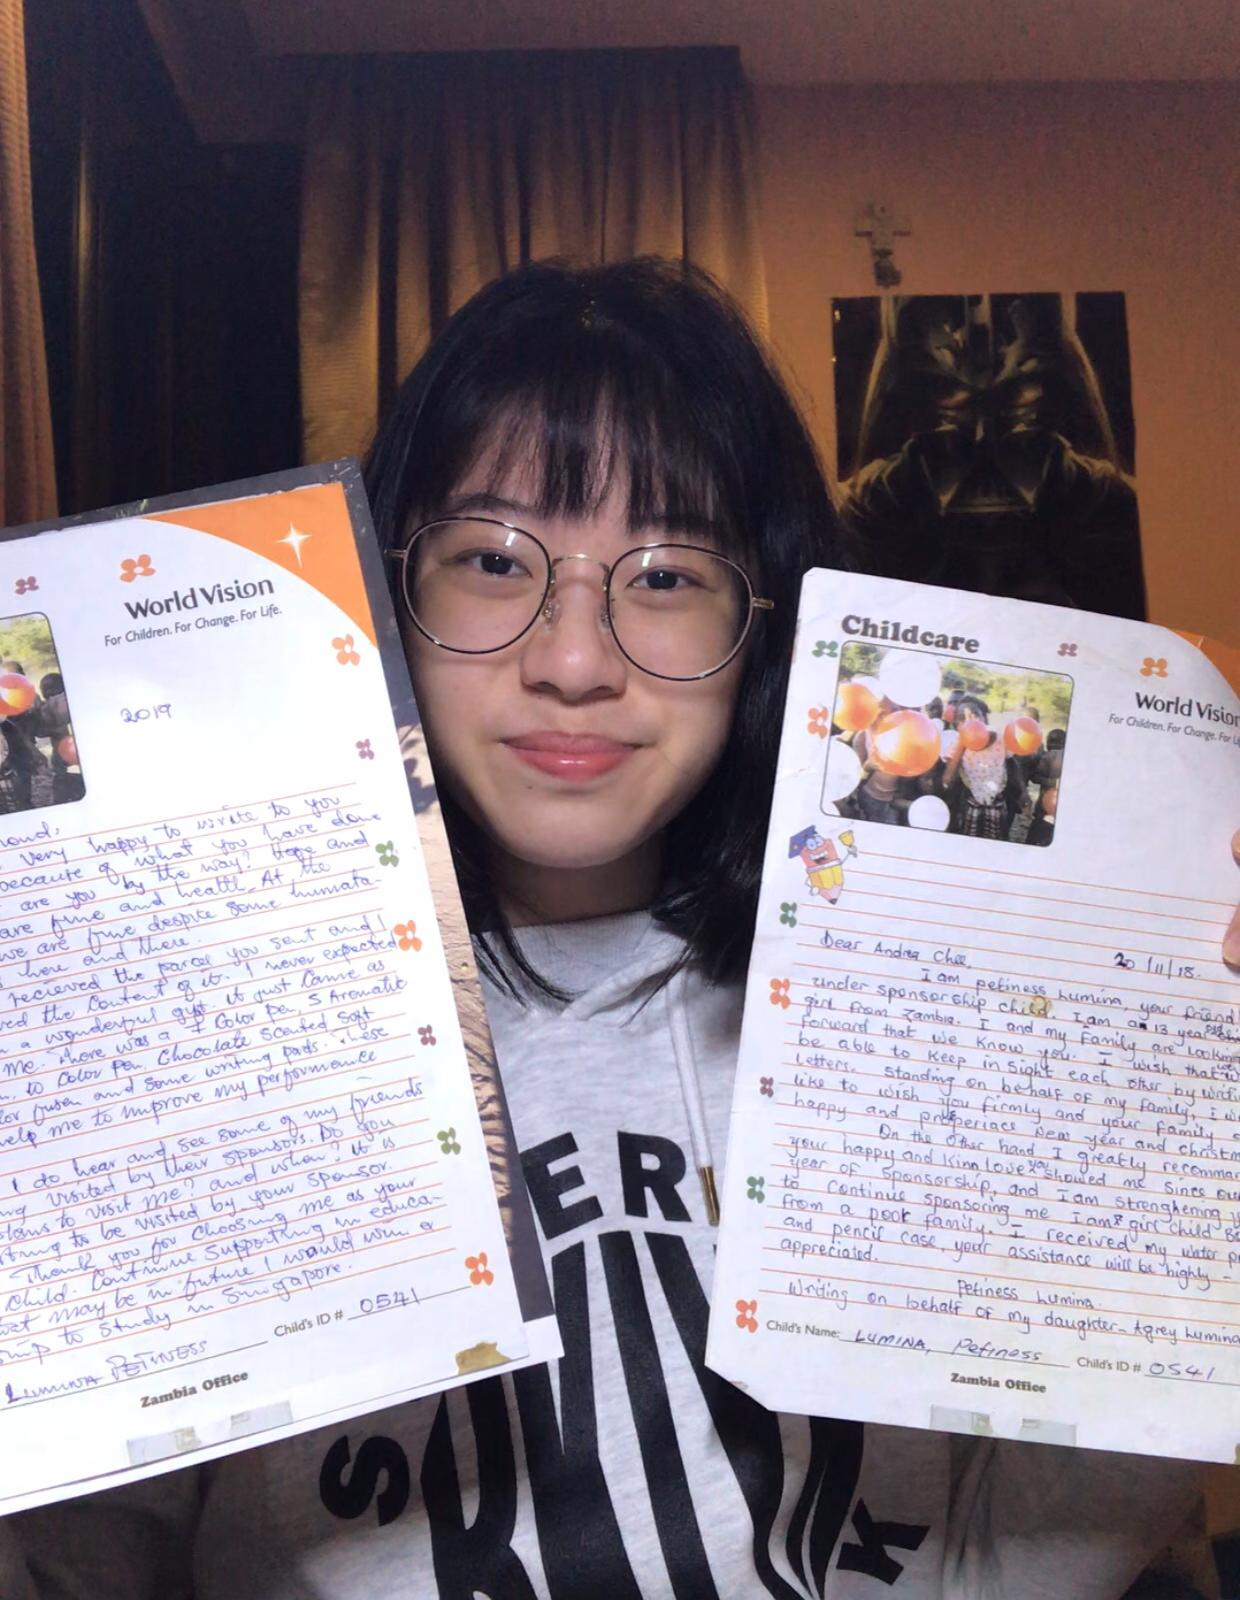 Andrea with reply letters from Petiness